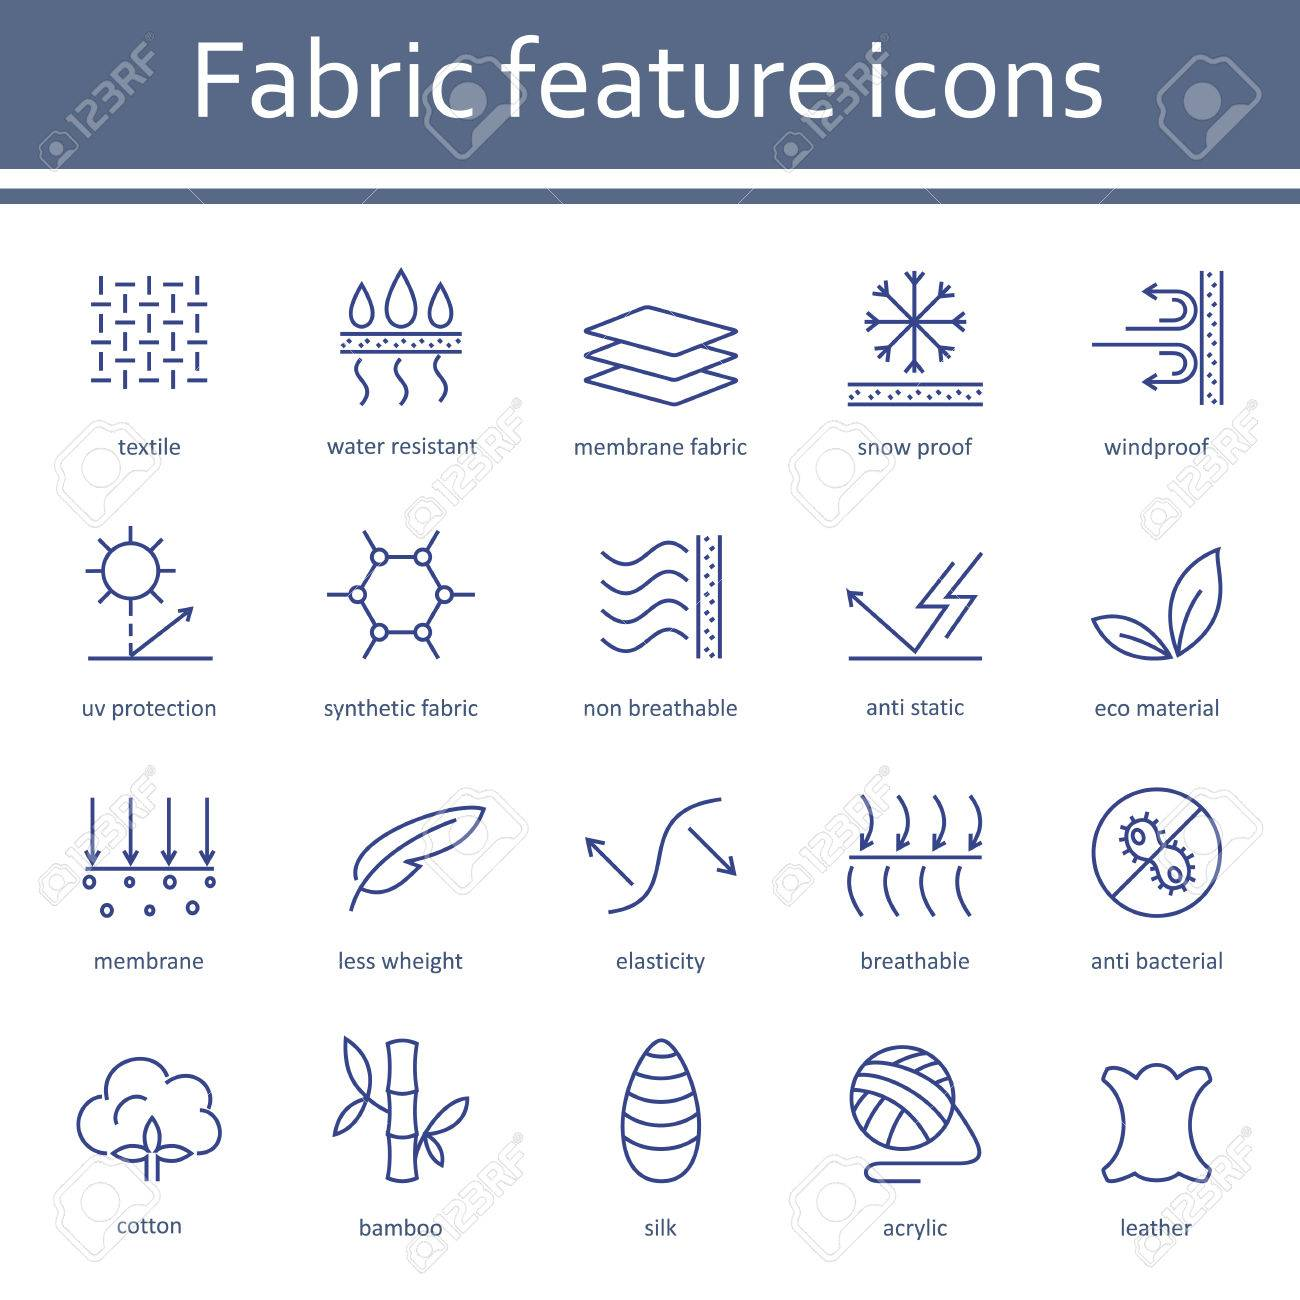 Fabric and clothes feature line icons. - 83802869